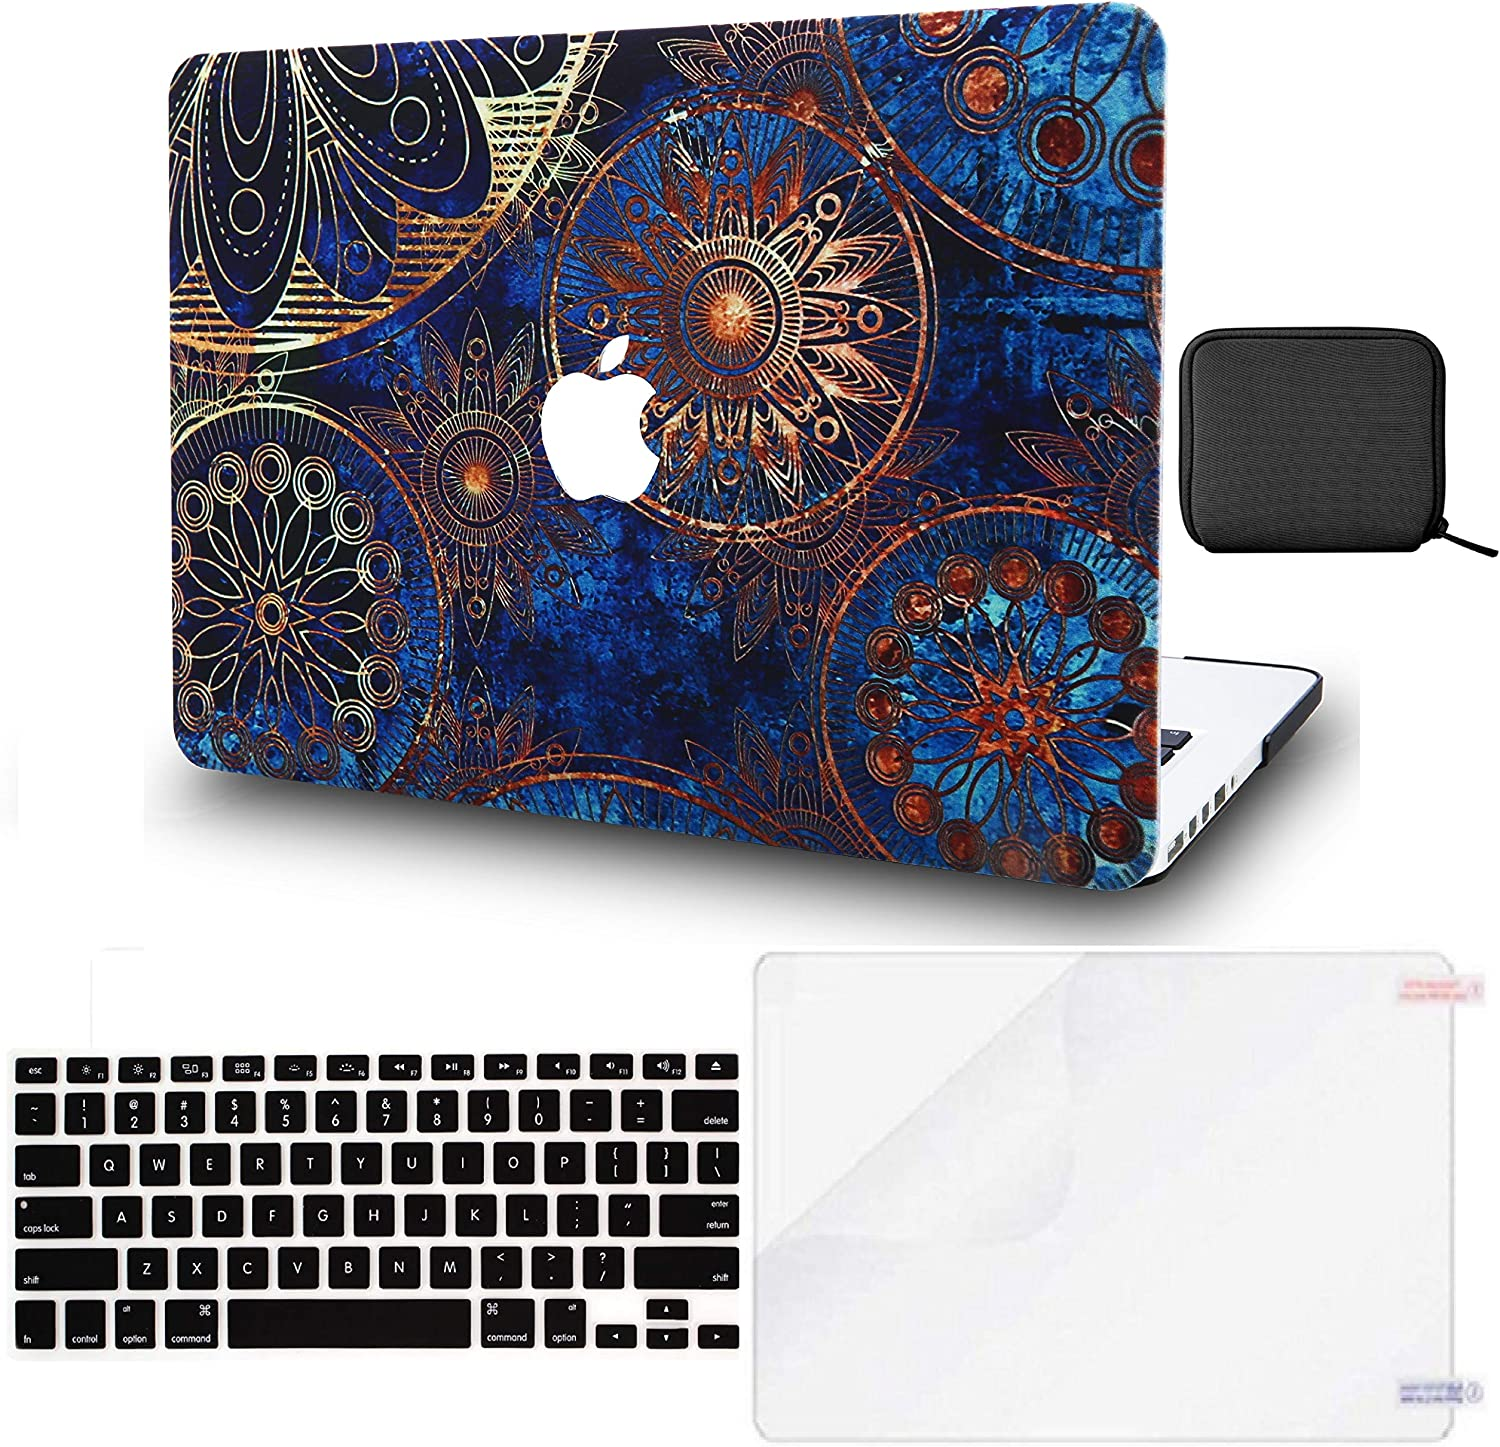 LuvCase 4 in 1 Laptop Case for MacBook Air 13 Inch (Touch ID)(2020) A2179 Retina Display Hard Shell Cover, Pouch, Keyboard Cover & Screen Protector (Bohemian)